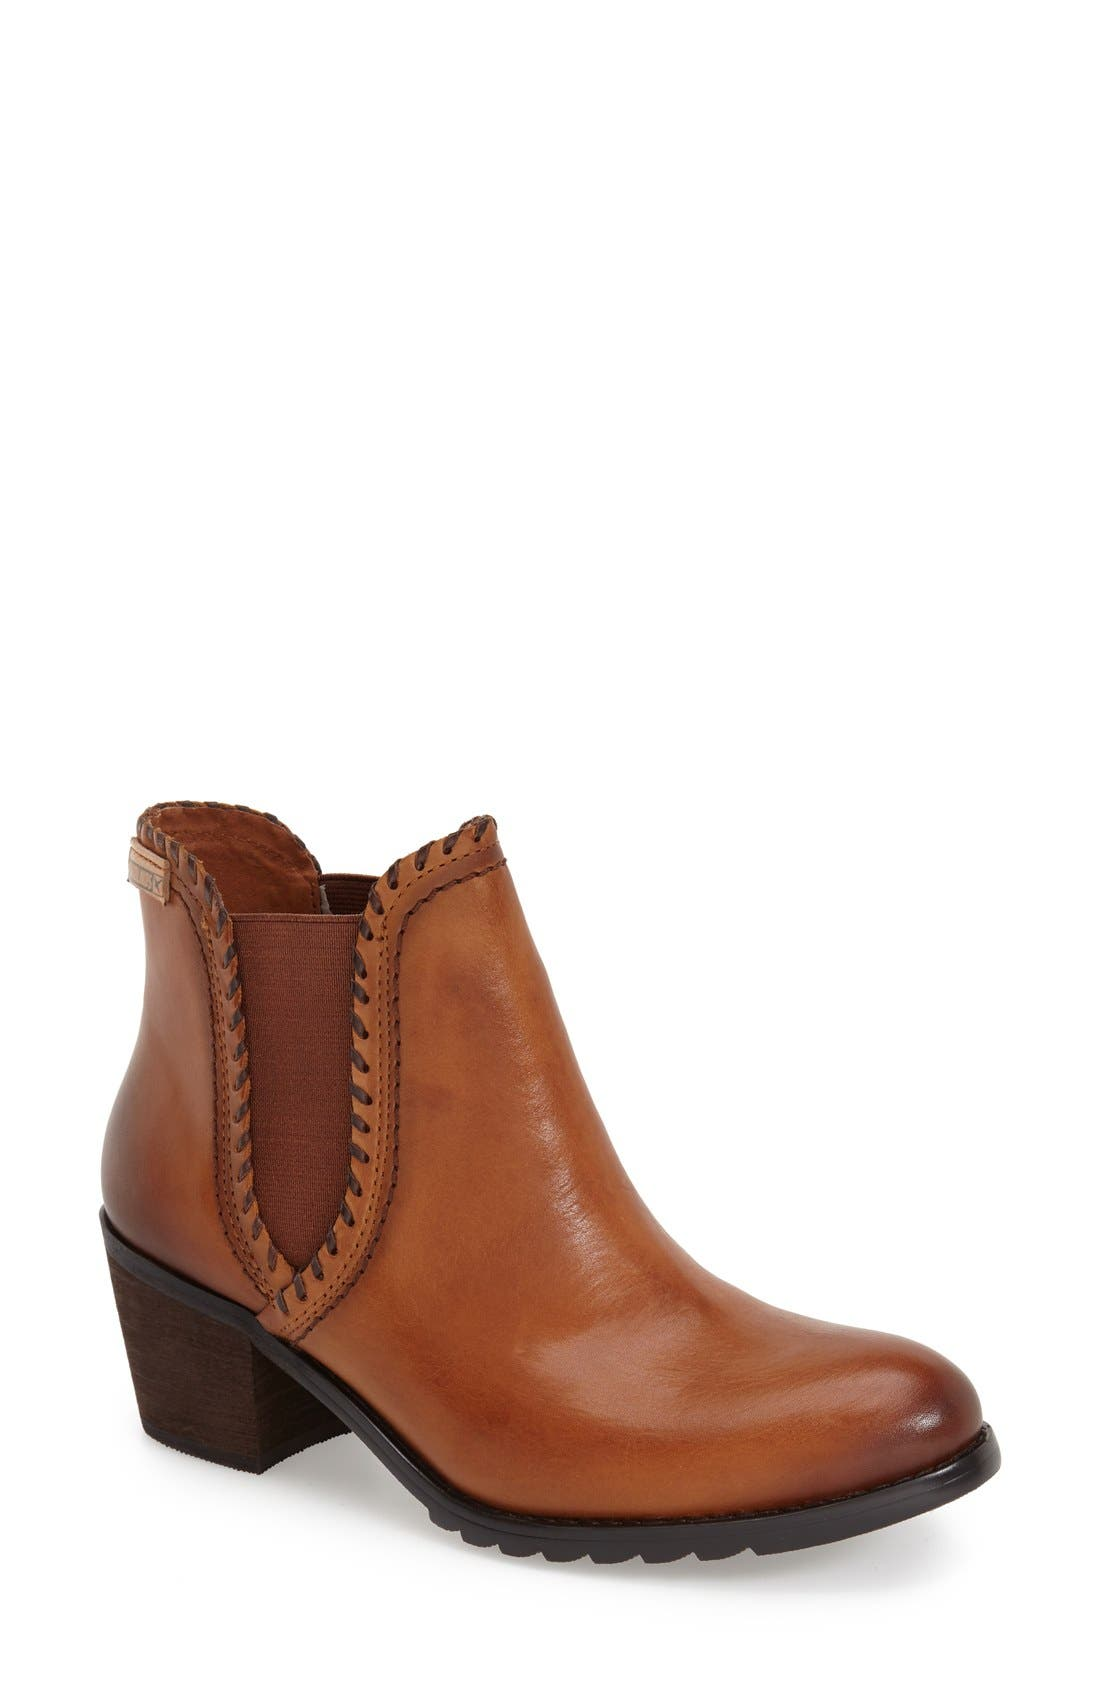 'Andorra' Water Resistant Bootie,                         Main,                         color, Brandy Leather